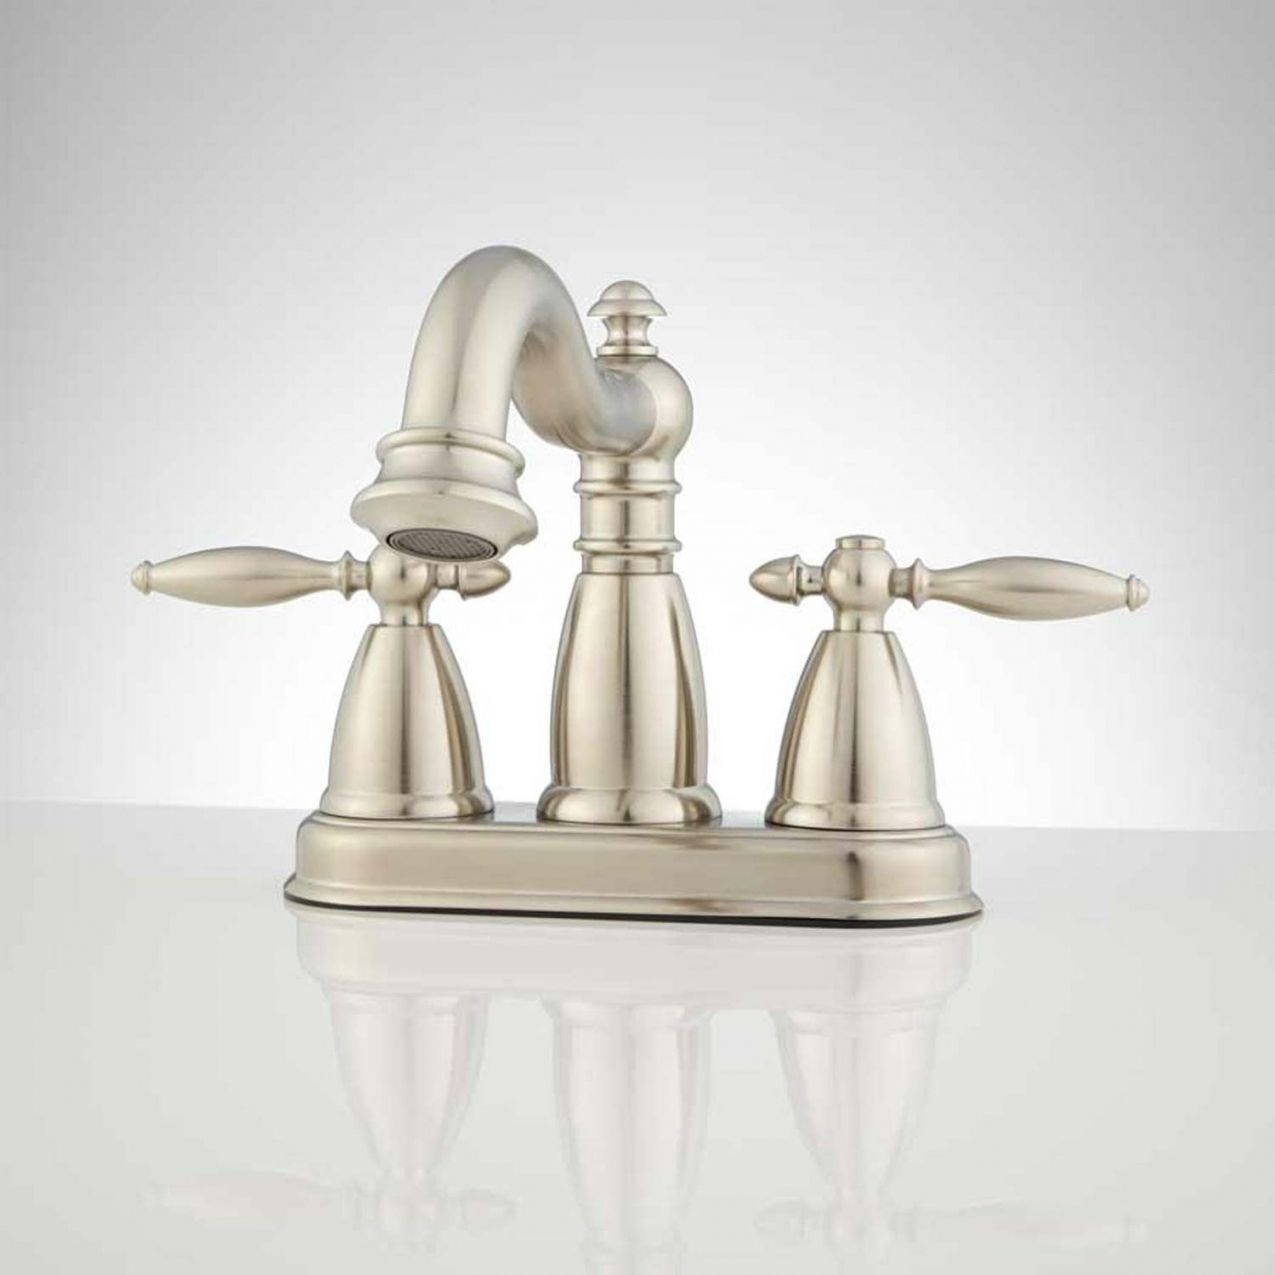 Matching Bathroom Faucet Sets • Bathroom Faucets And Bathroom ...